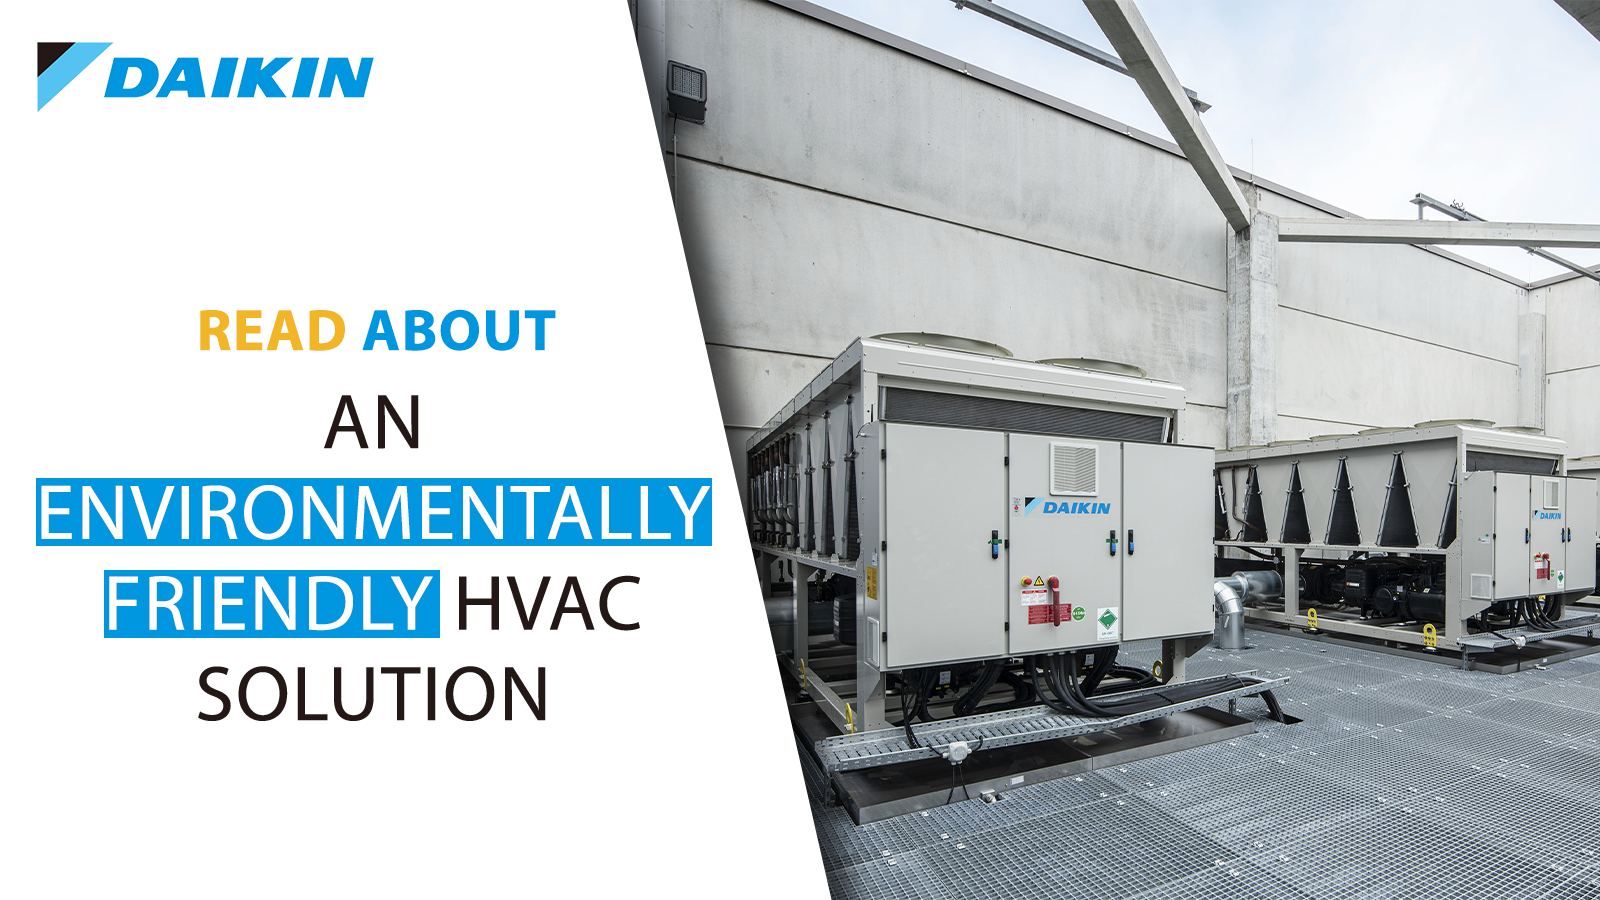 environmentally friendly HVAC solution